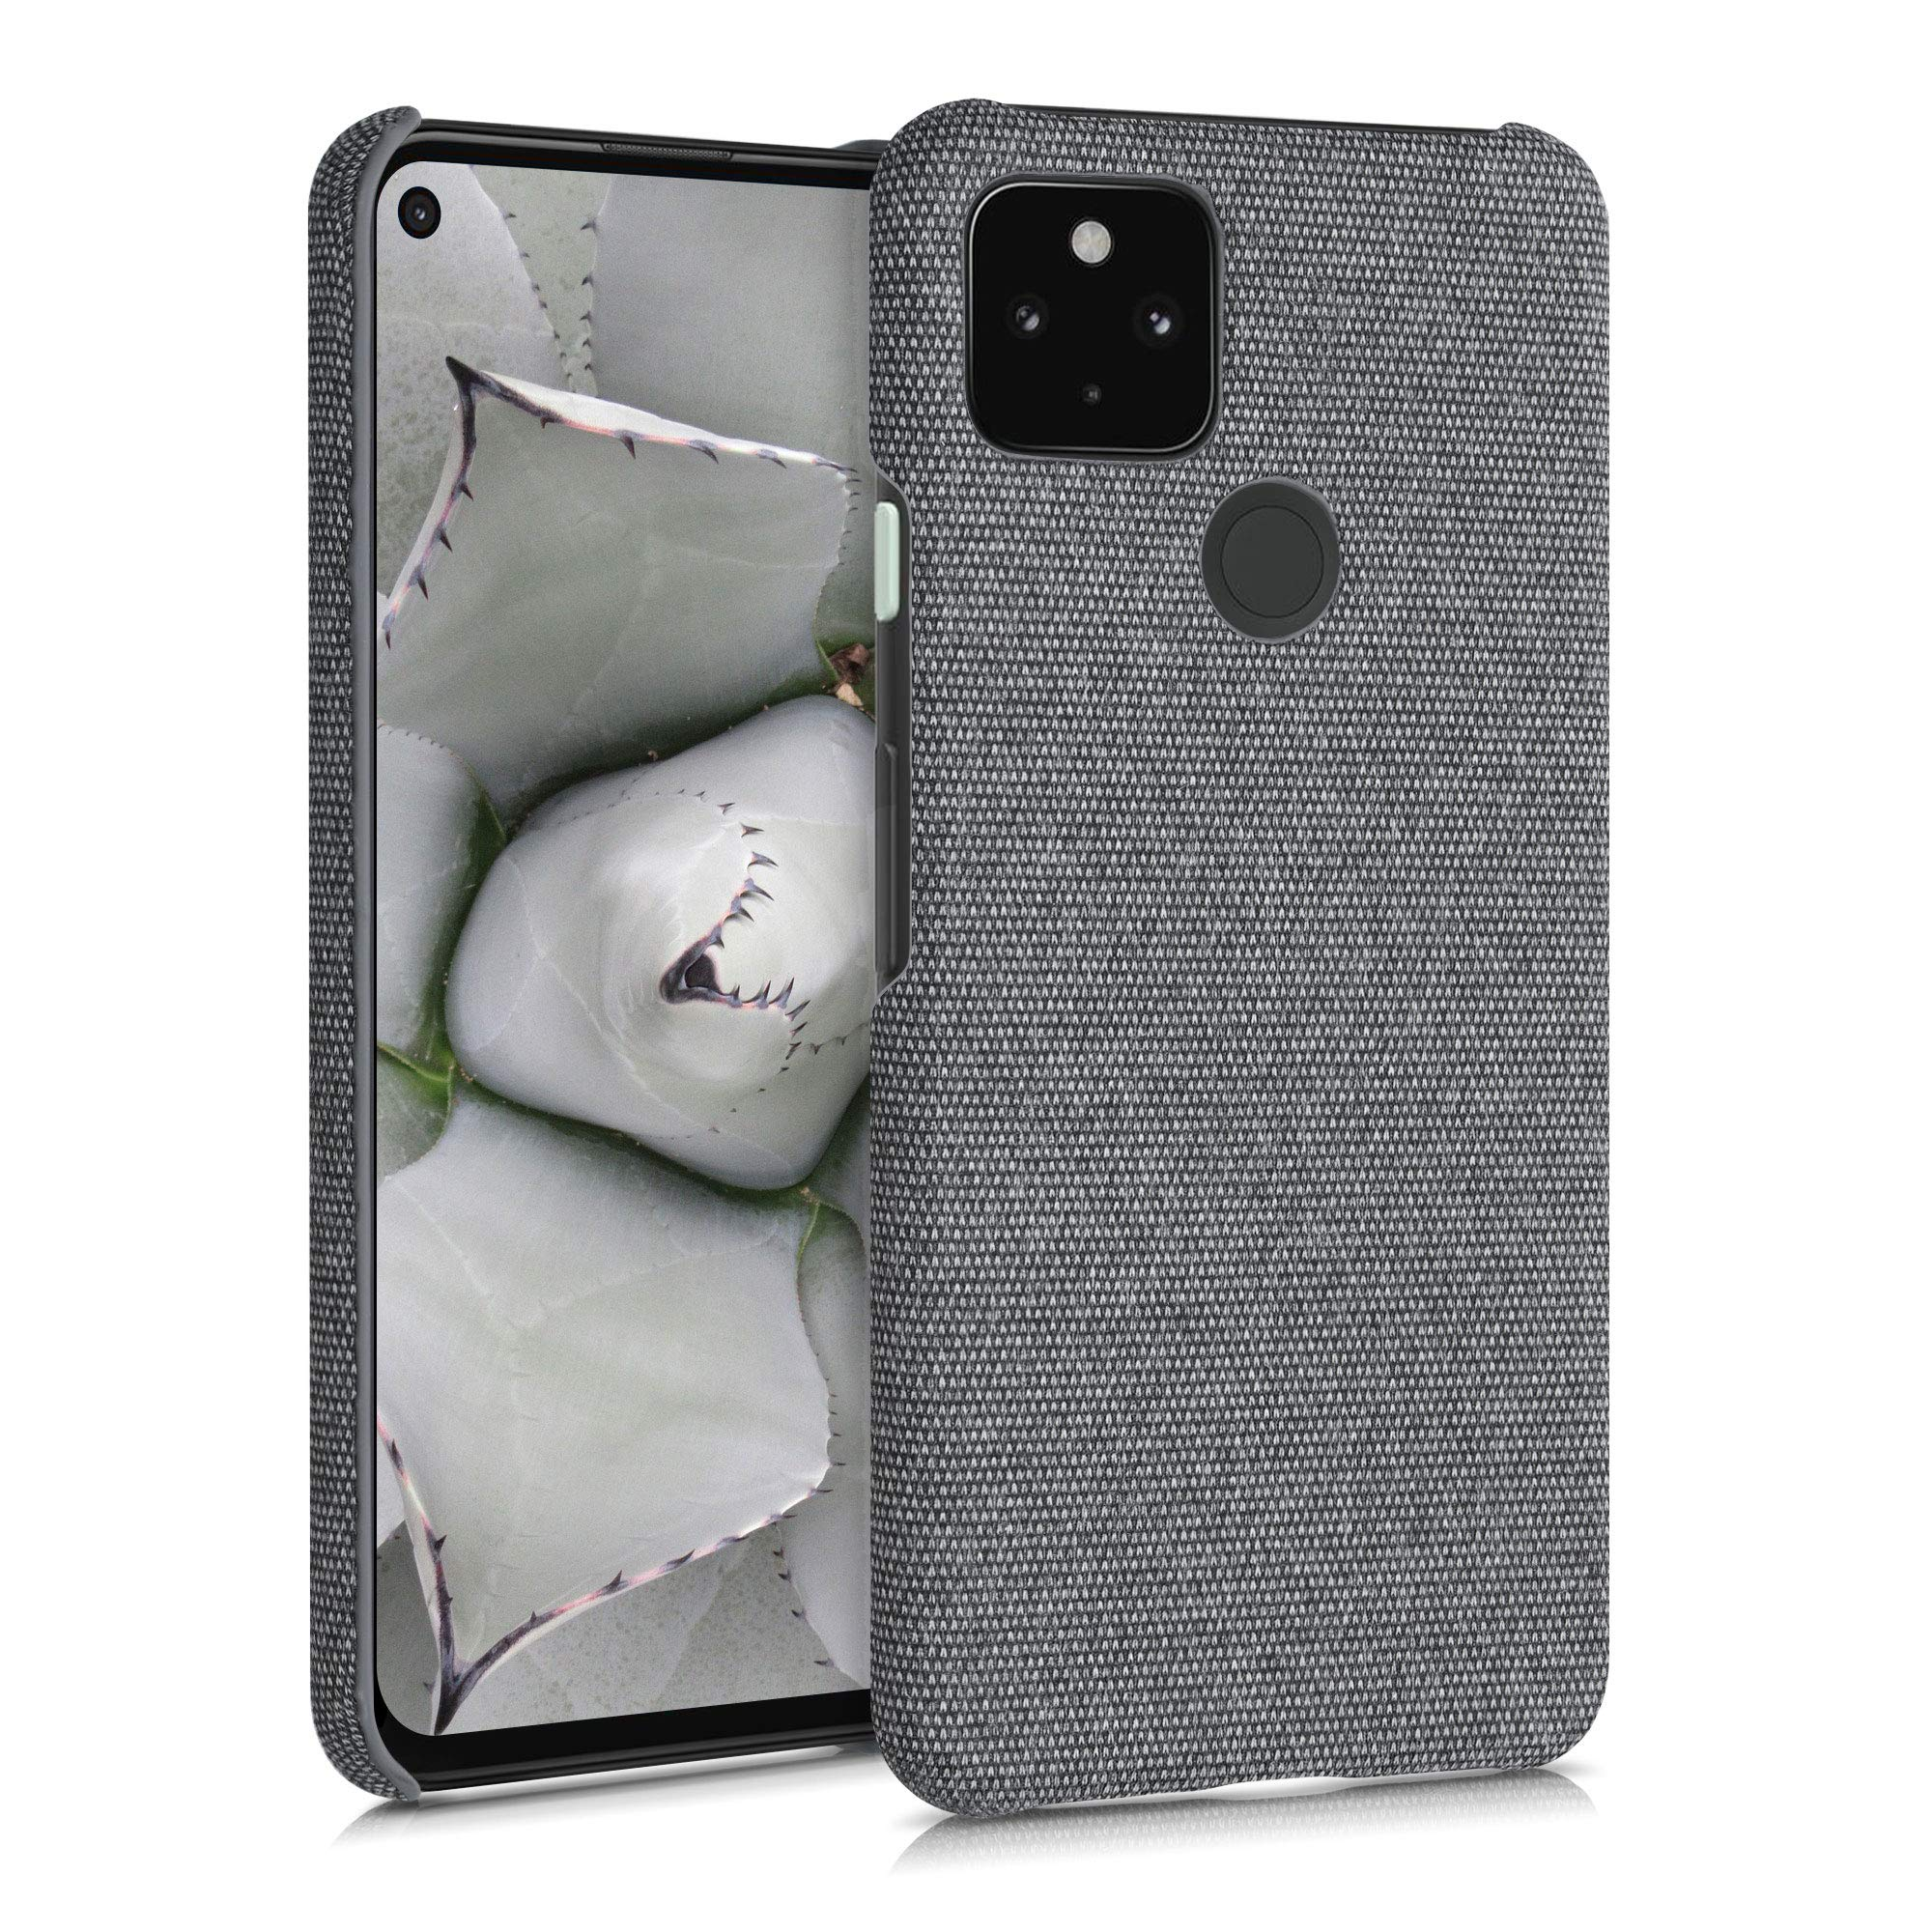 kwmobile Case Compatible with Google Pixel 4a 5G - Fabric Protective Canvas Back Cover - Grey